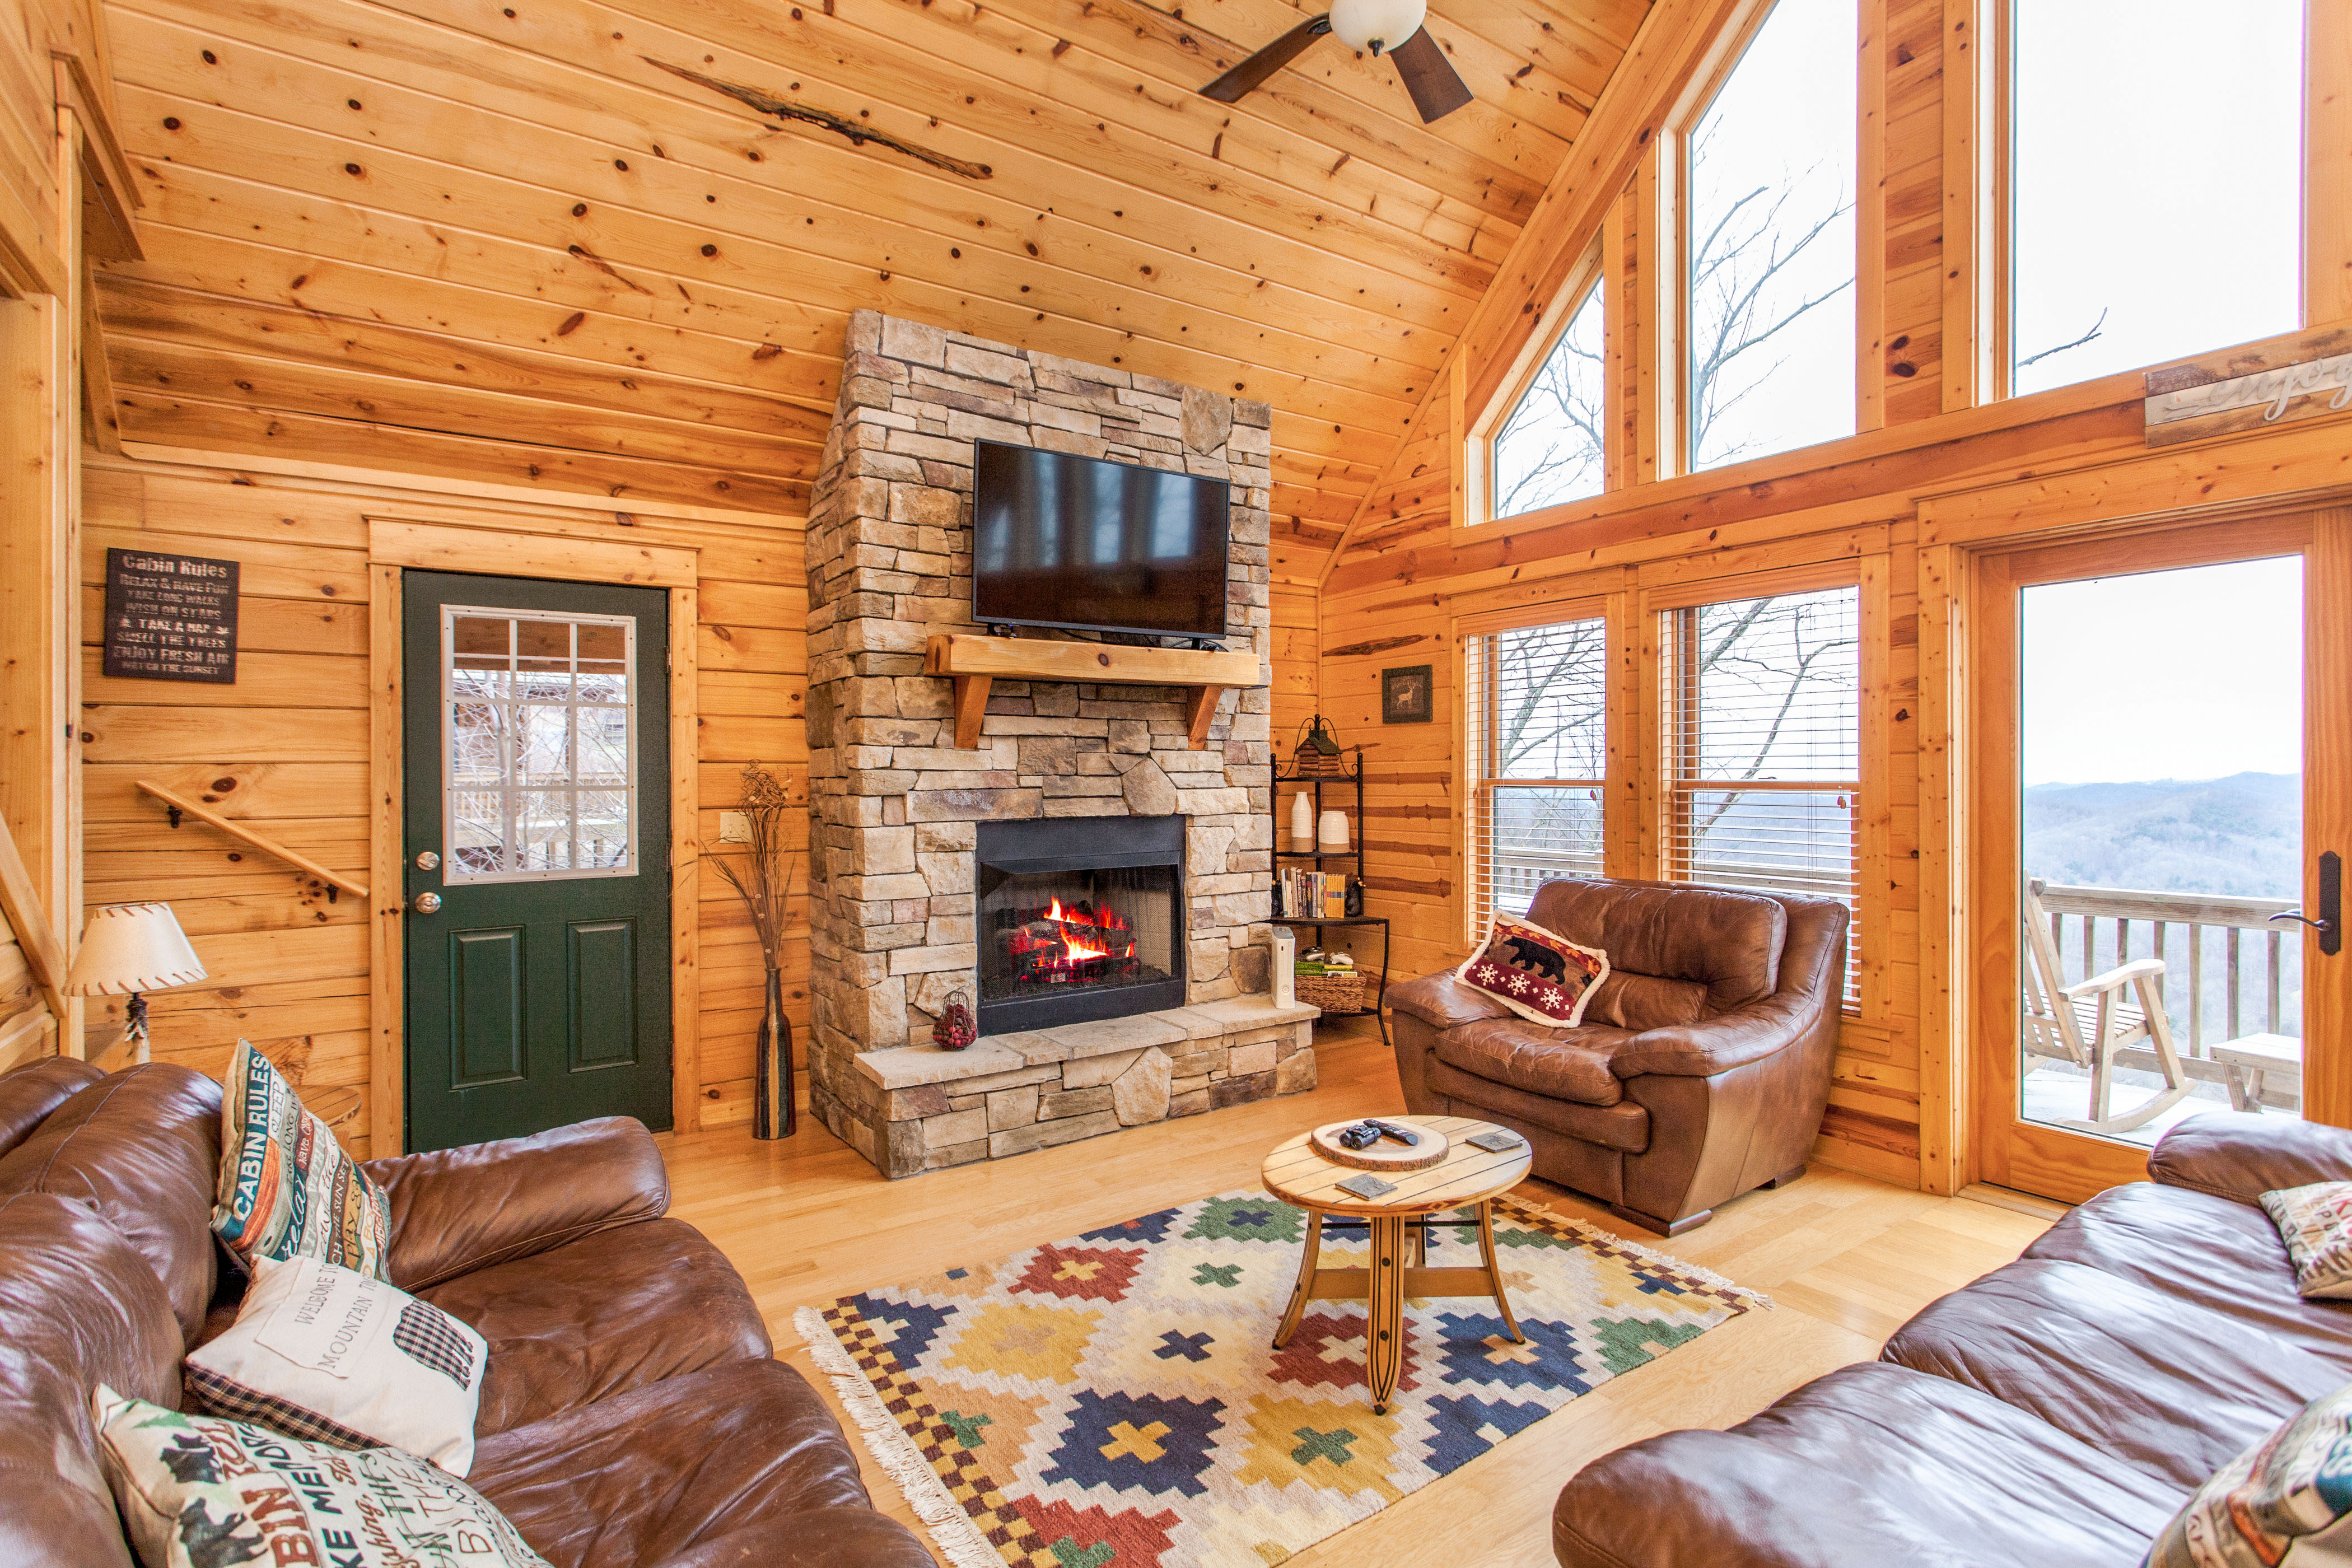 Mars Hill NC Vacation Rental This light-filled home